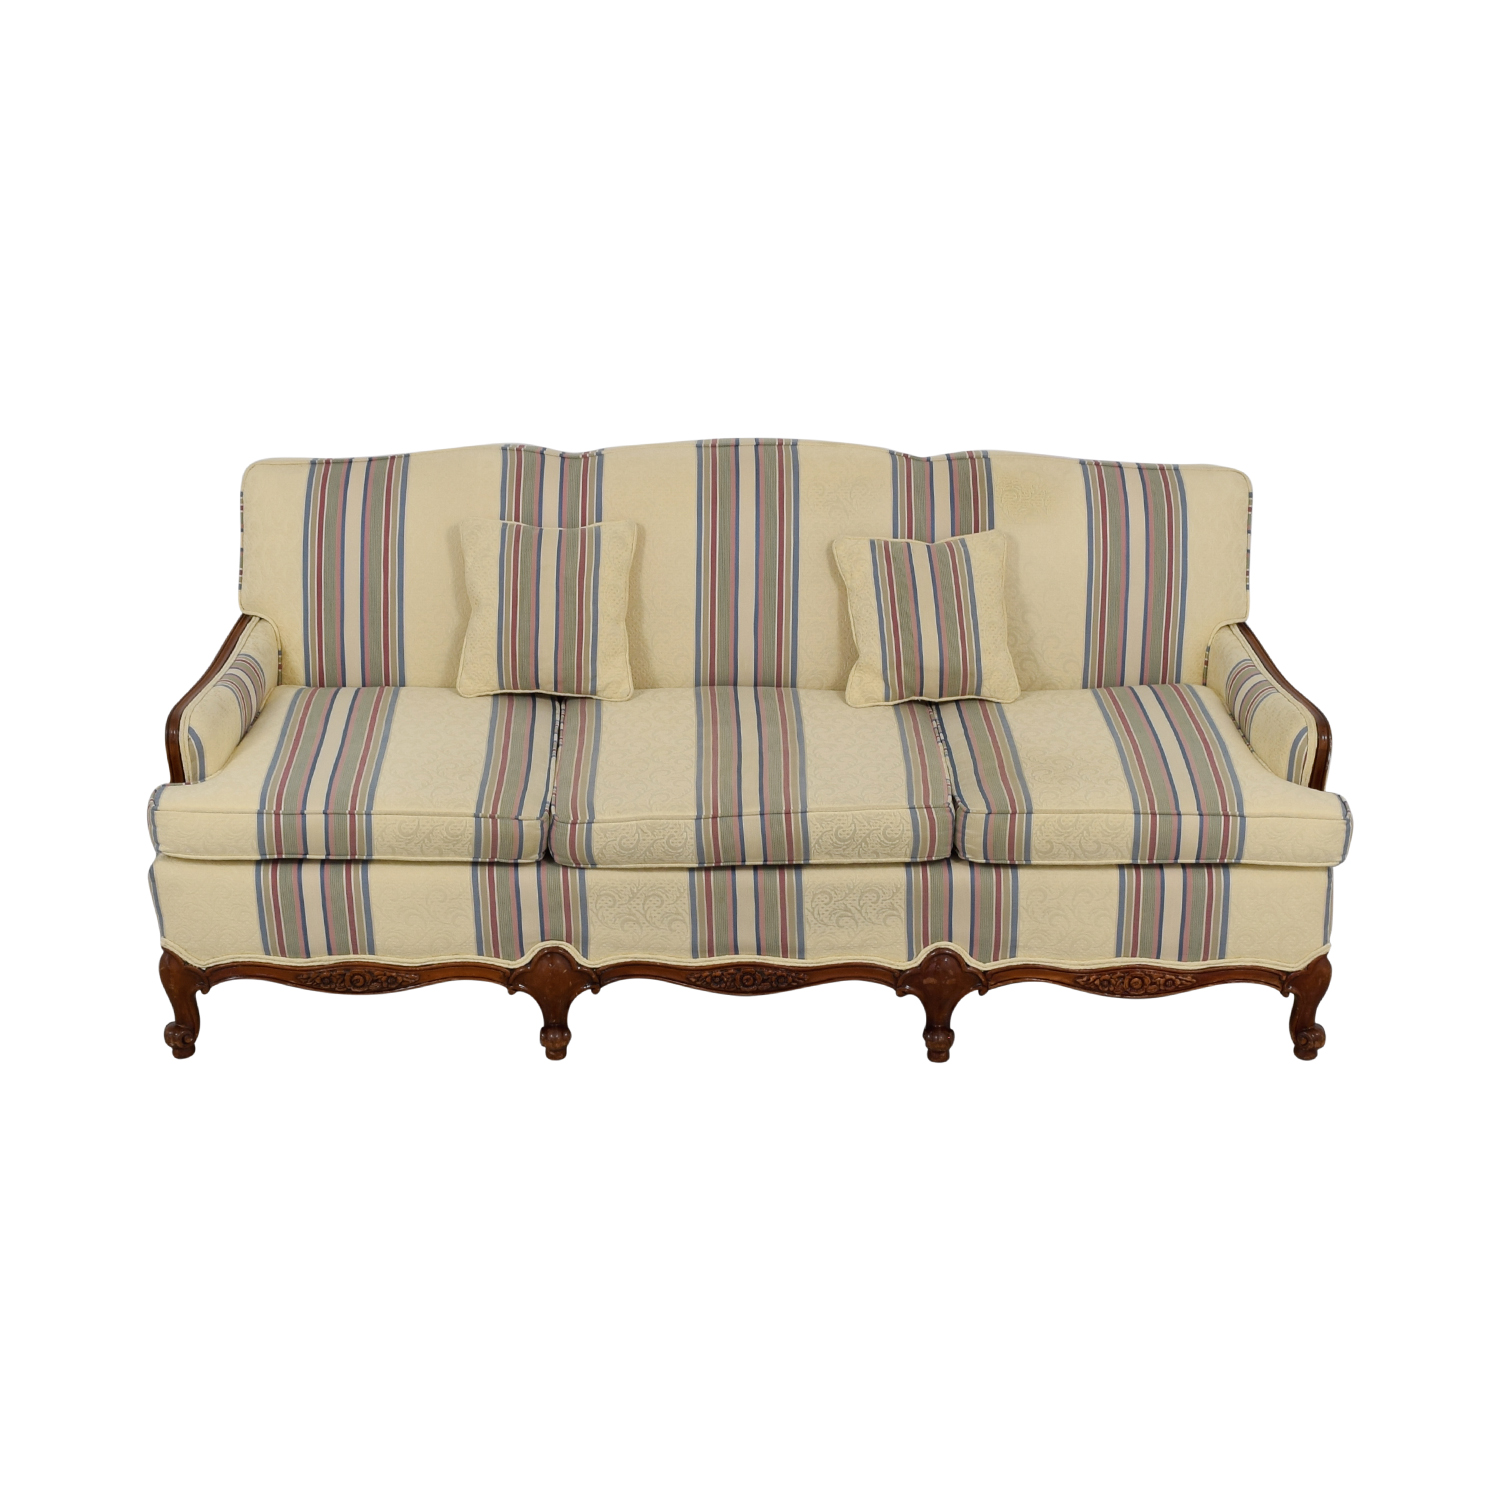 Beige Multi-Colored Striped Three-Cushion Couch for sale